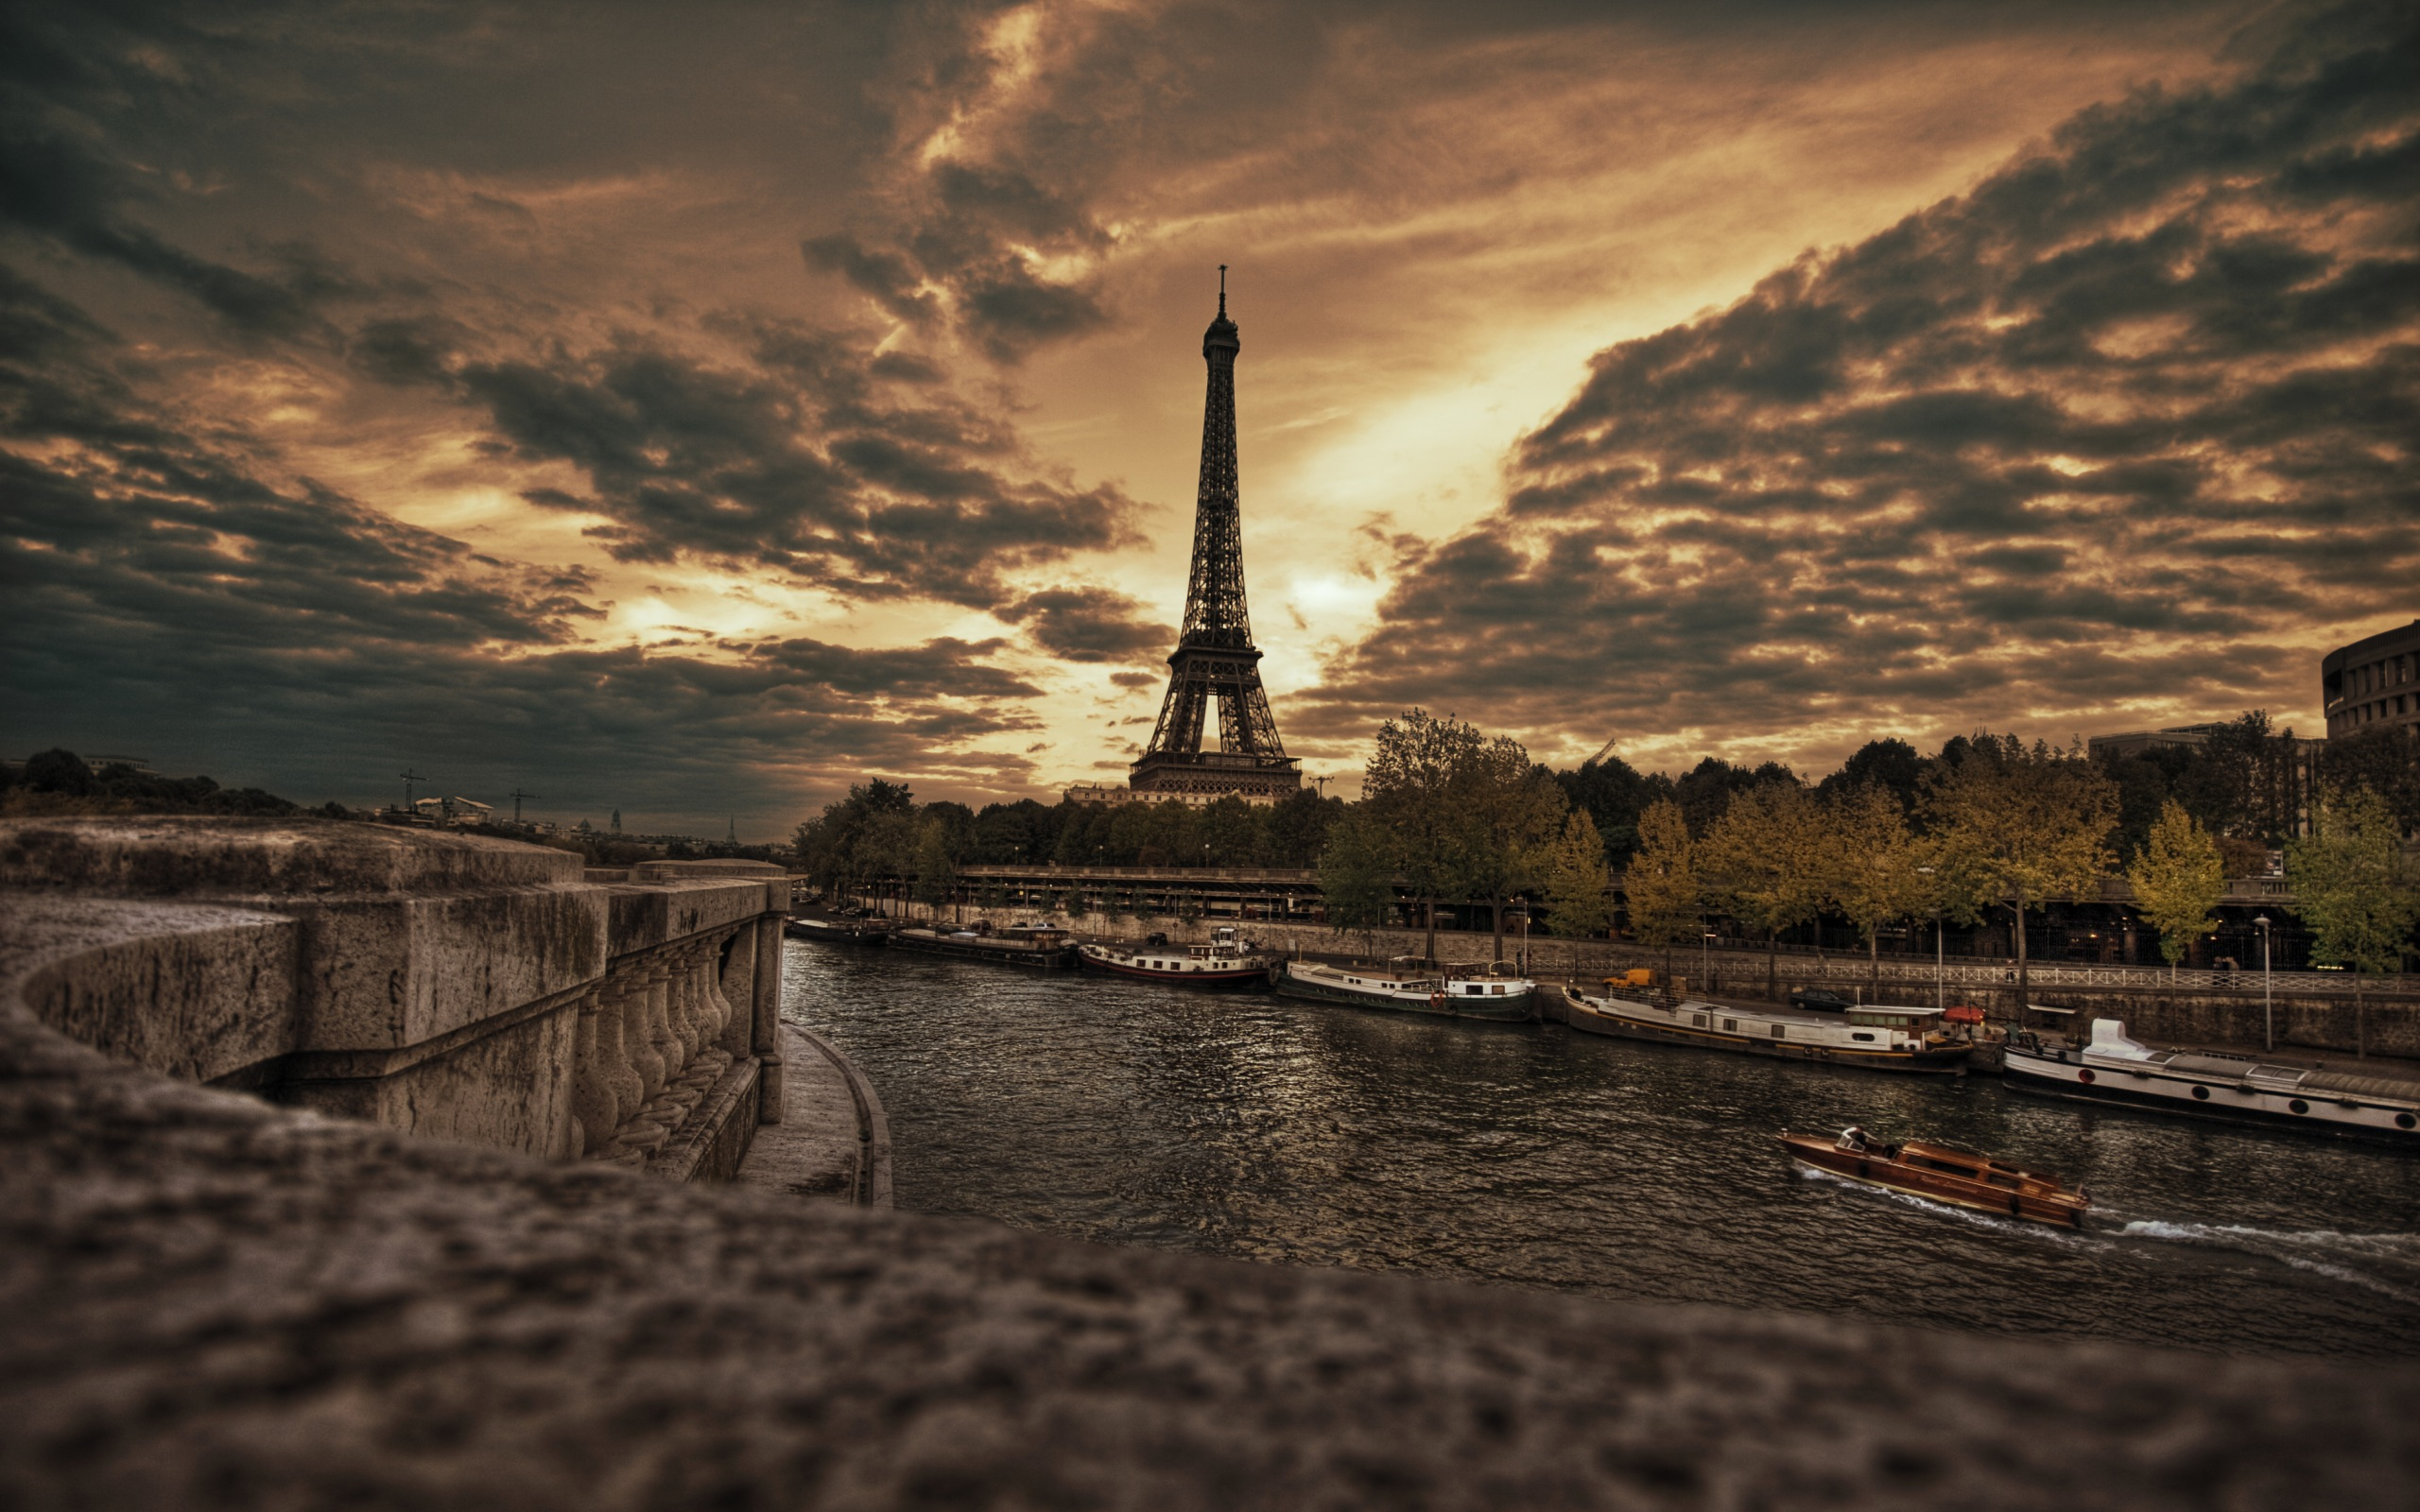 eiffel tower hd wallpaper | background image | 2560x1600 | id:88895